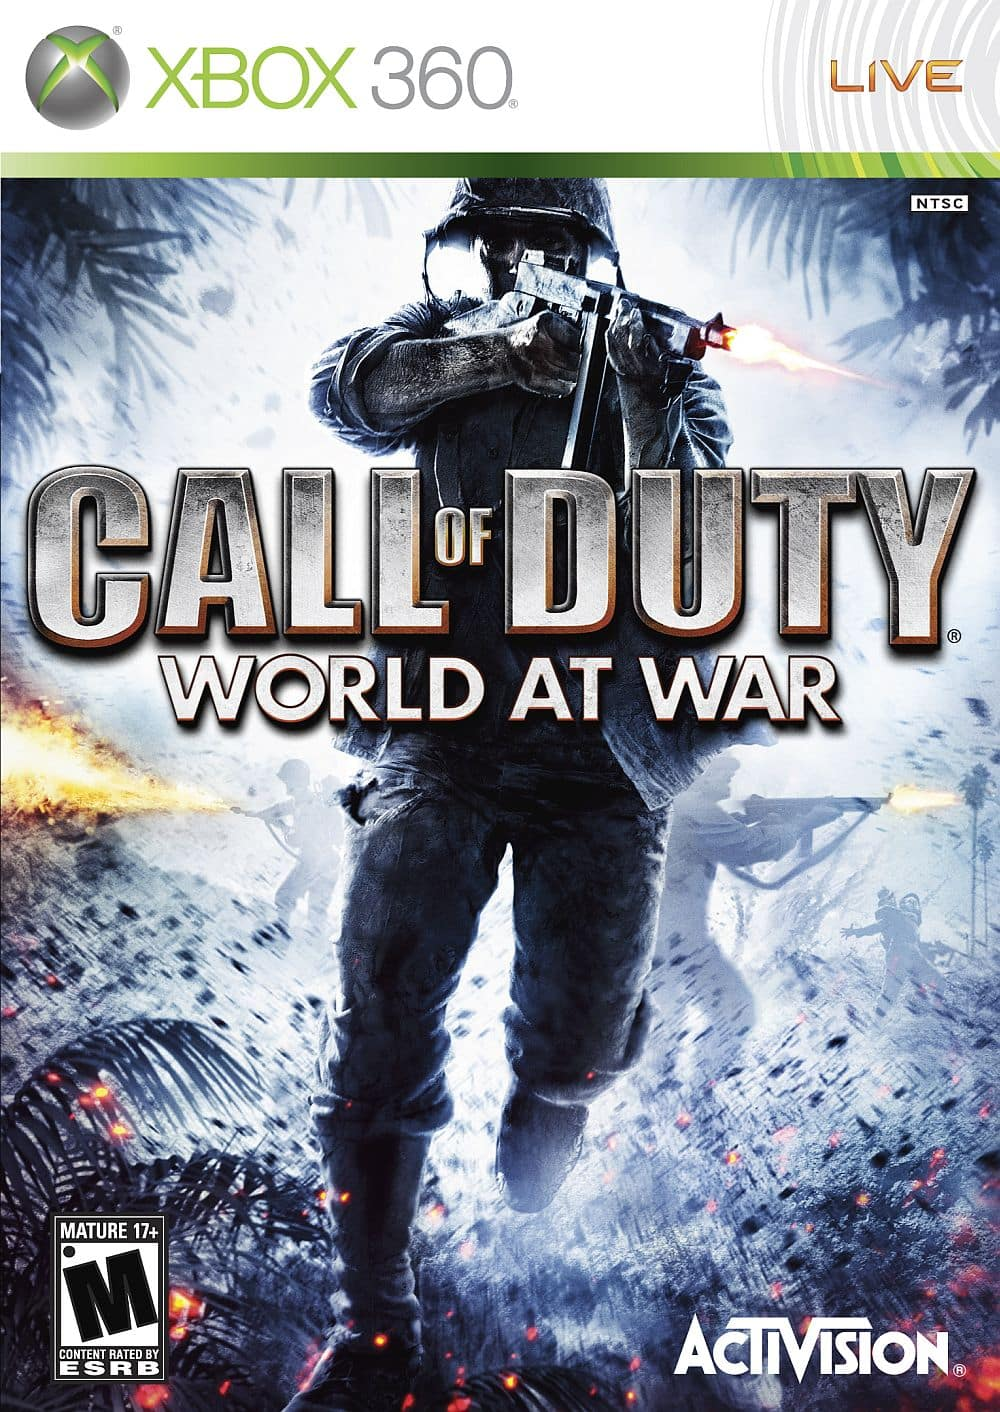 Call Of Duty : World At War & Black Ops - $9.99 each with Gold Sale - Xbox 360 Backwards Compatible - Digital Download